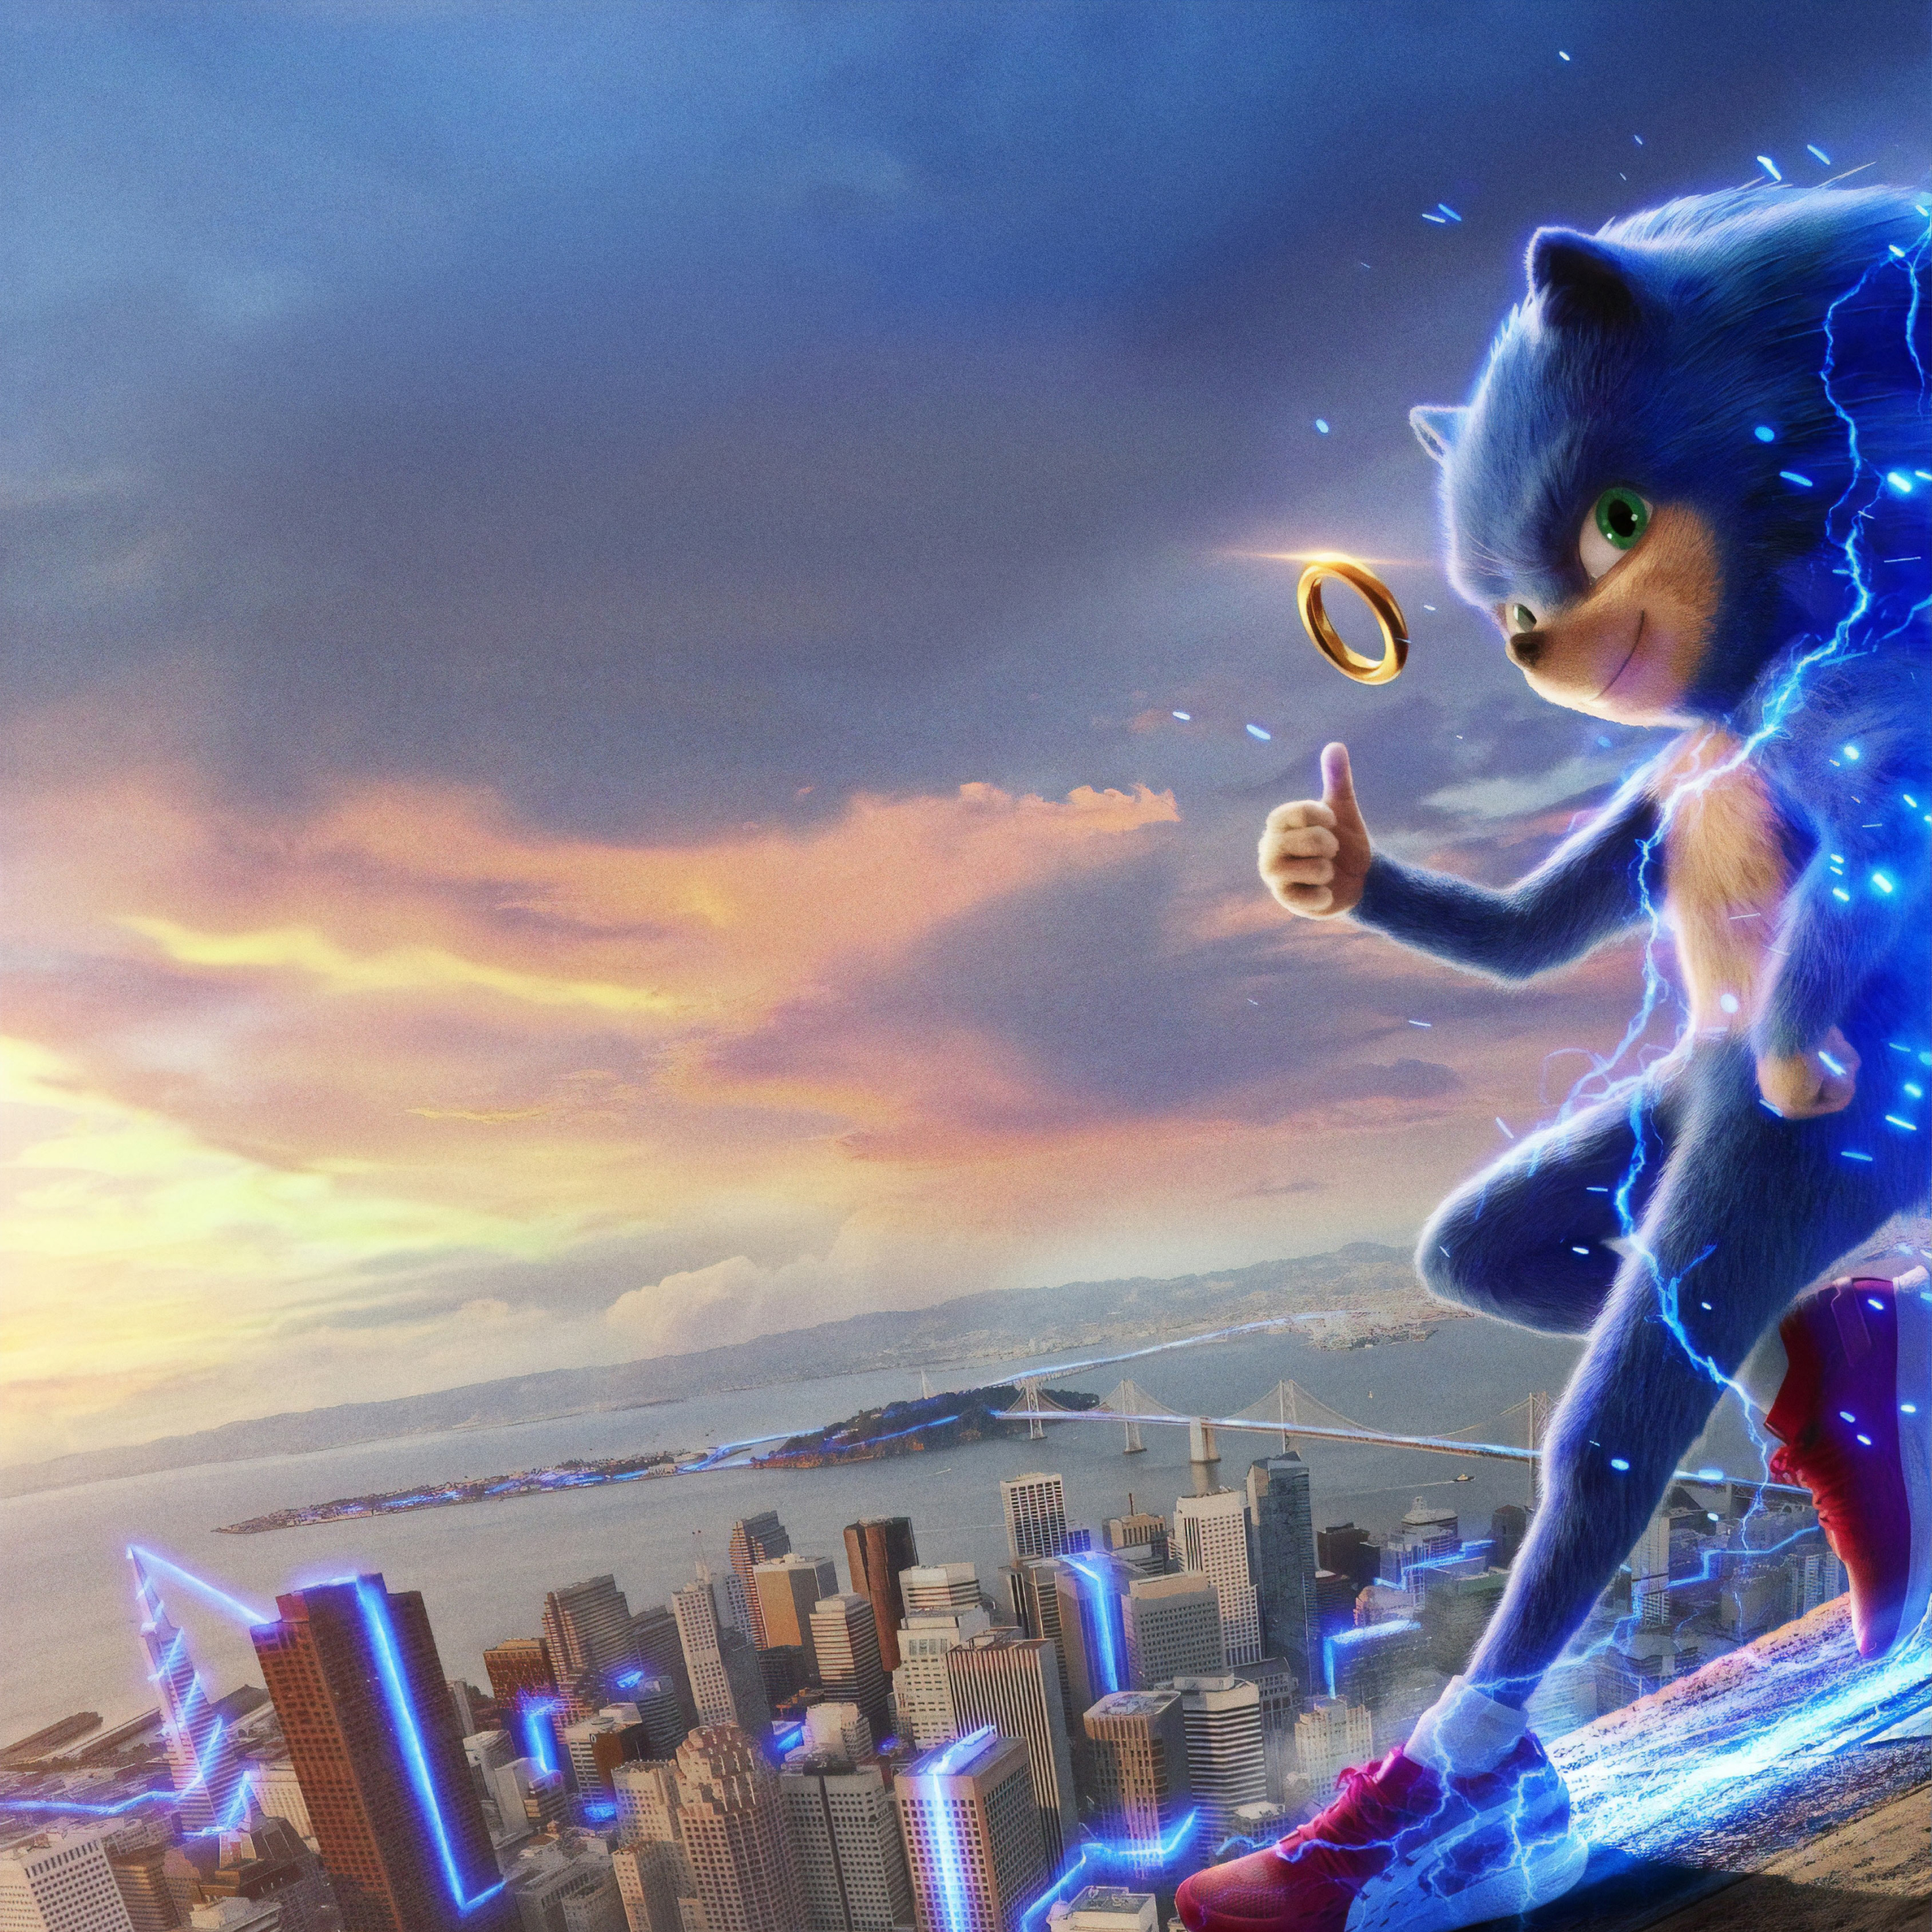 2932x2932 Poster Of Sonic The Hedgehog Ipad Pro Retina Display Wallpaper Hd Movies 4k Wallpapers Images Photos And Background